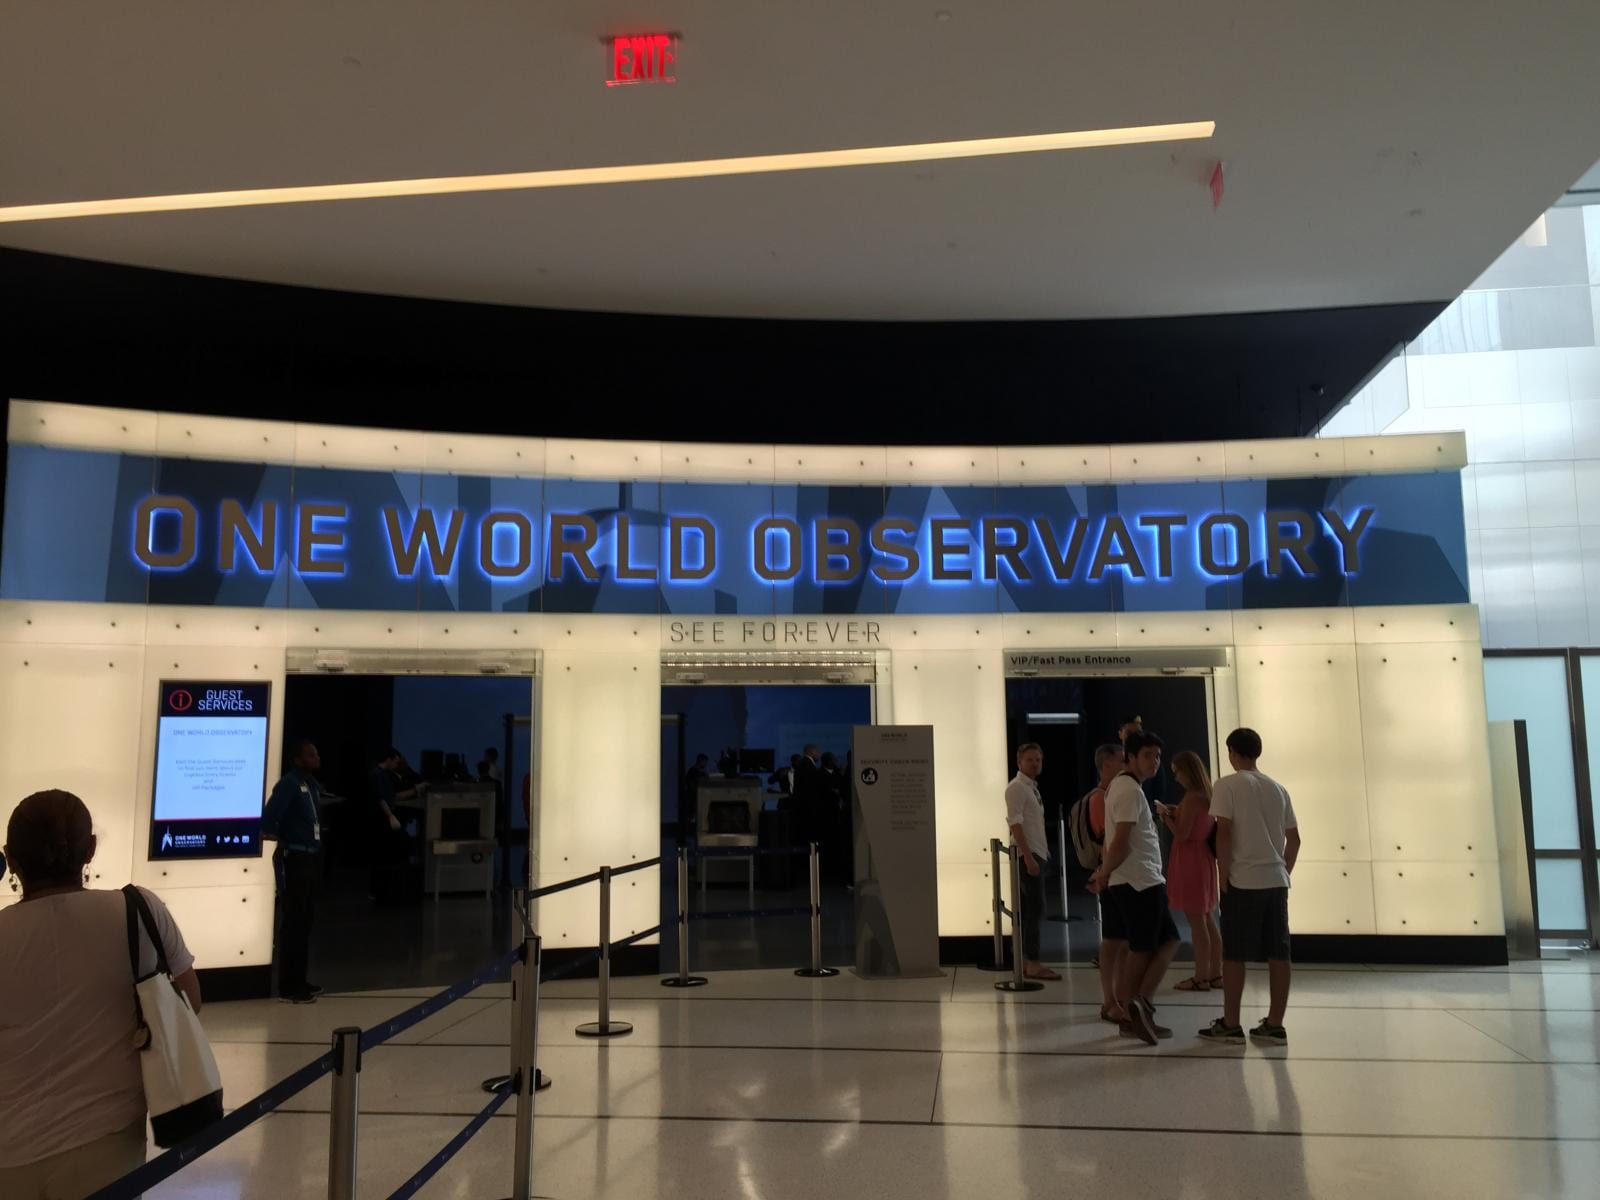 One World Observatory Welcome Center